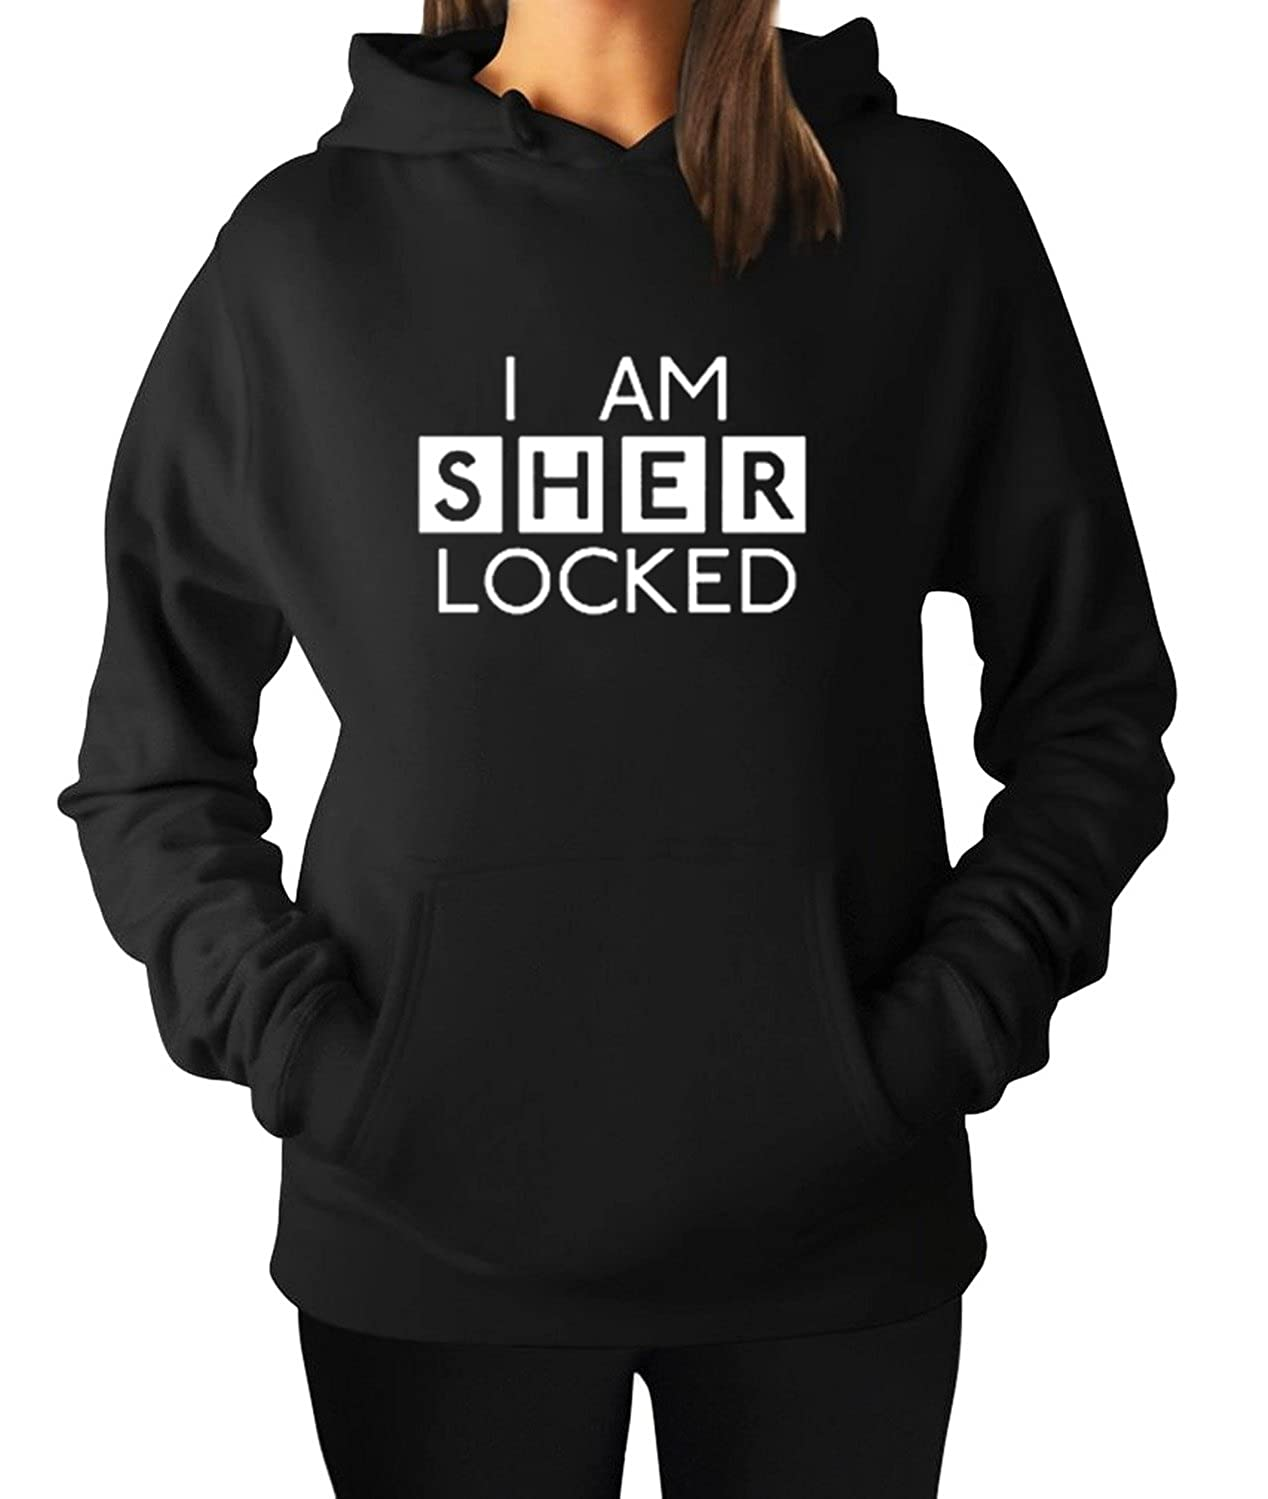 Womens Mens Unisex I Am Sherlocked Hoodie Hooded Sweater Sweatshirt